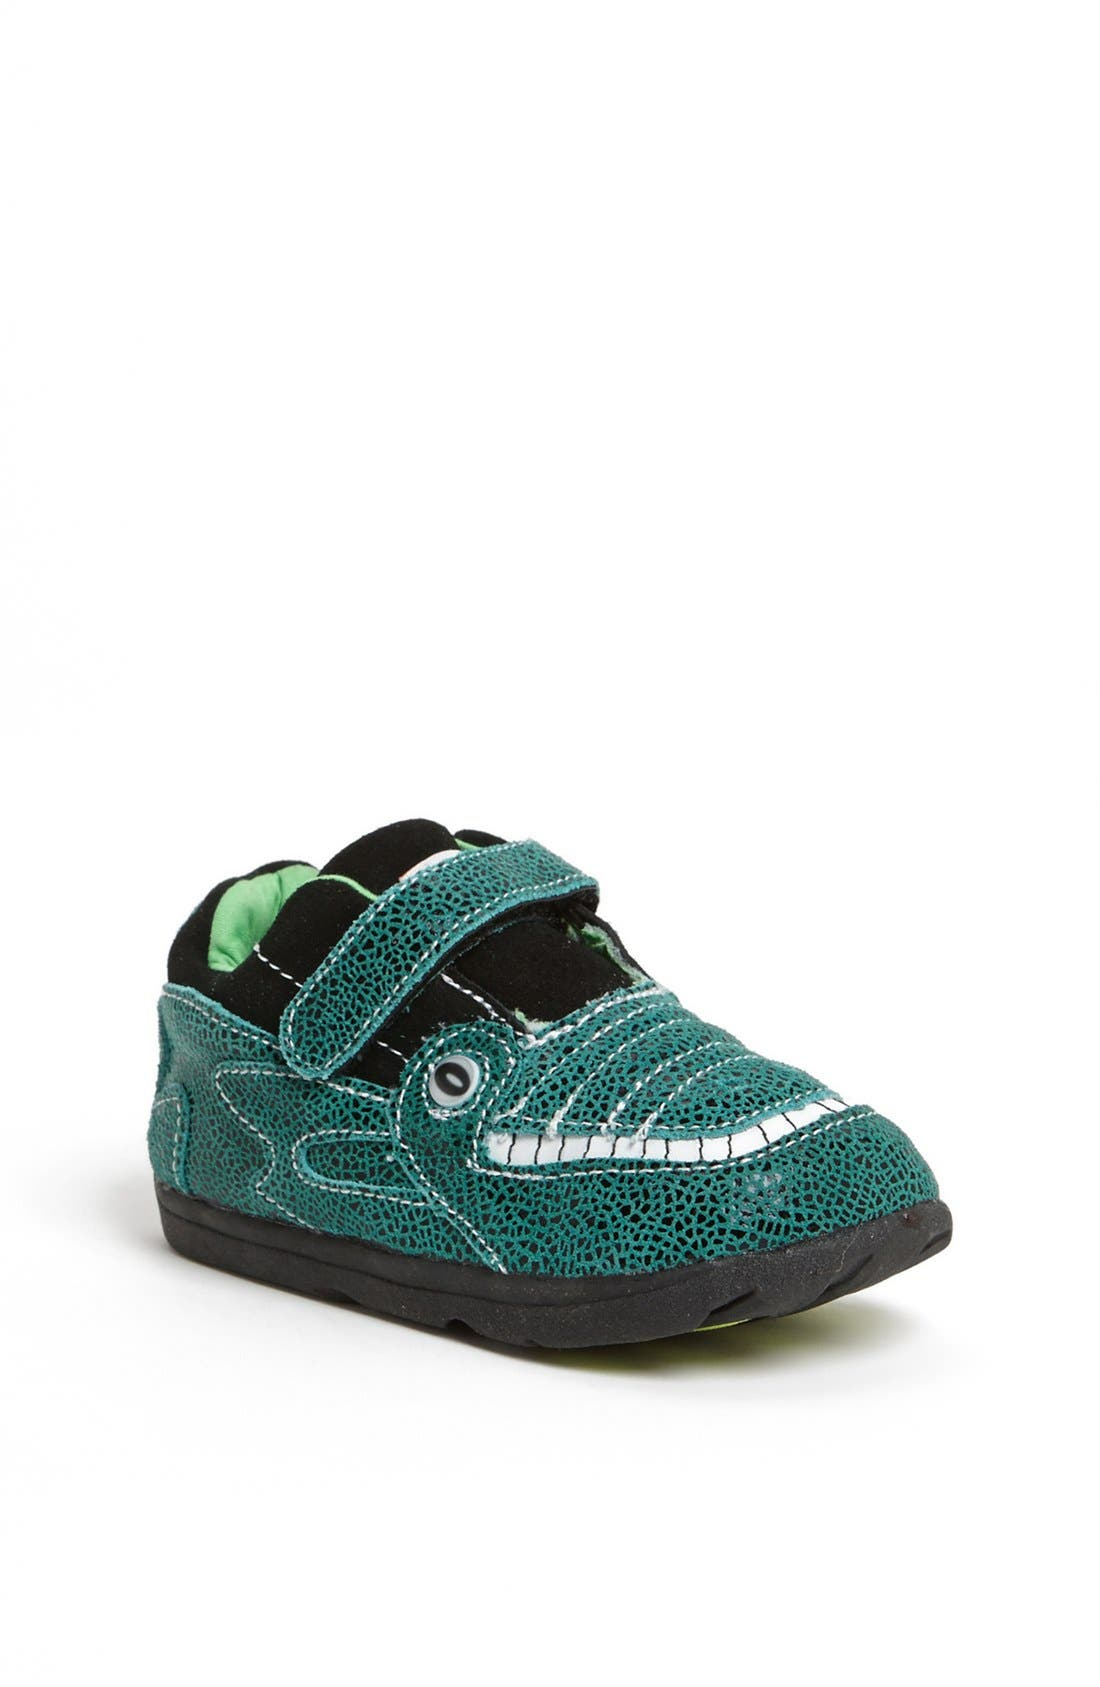 Alternate Image 1 Selected - Zooligans™ 'Jacques the Gator' Sneaker (Baby, Walker, Toddler & Little Kid)